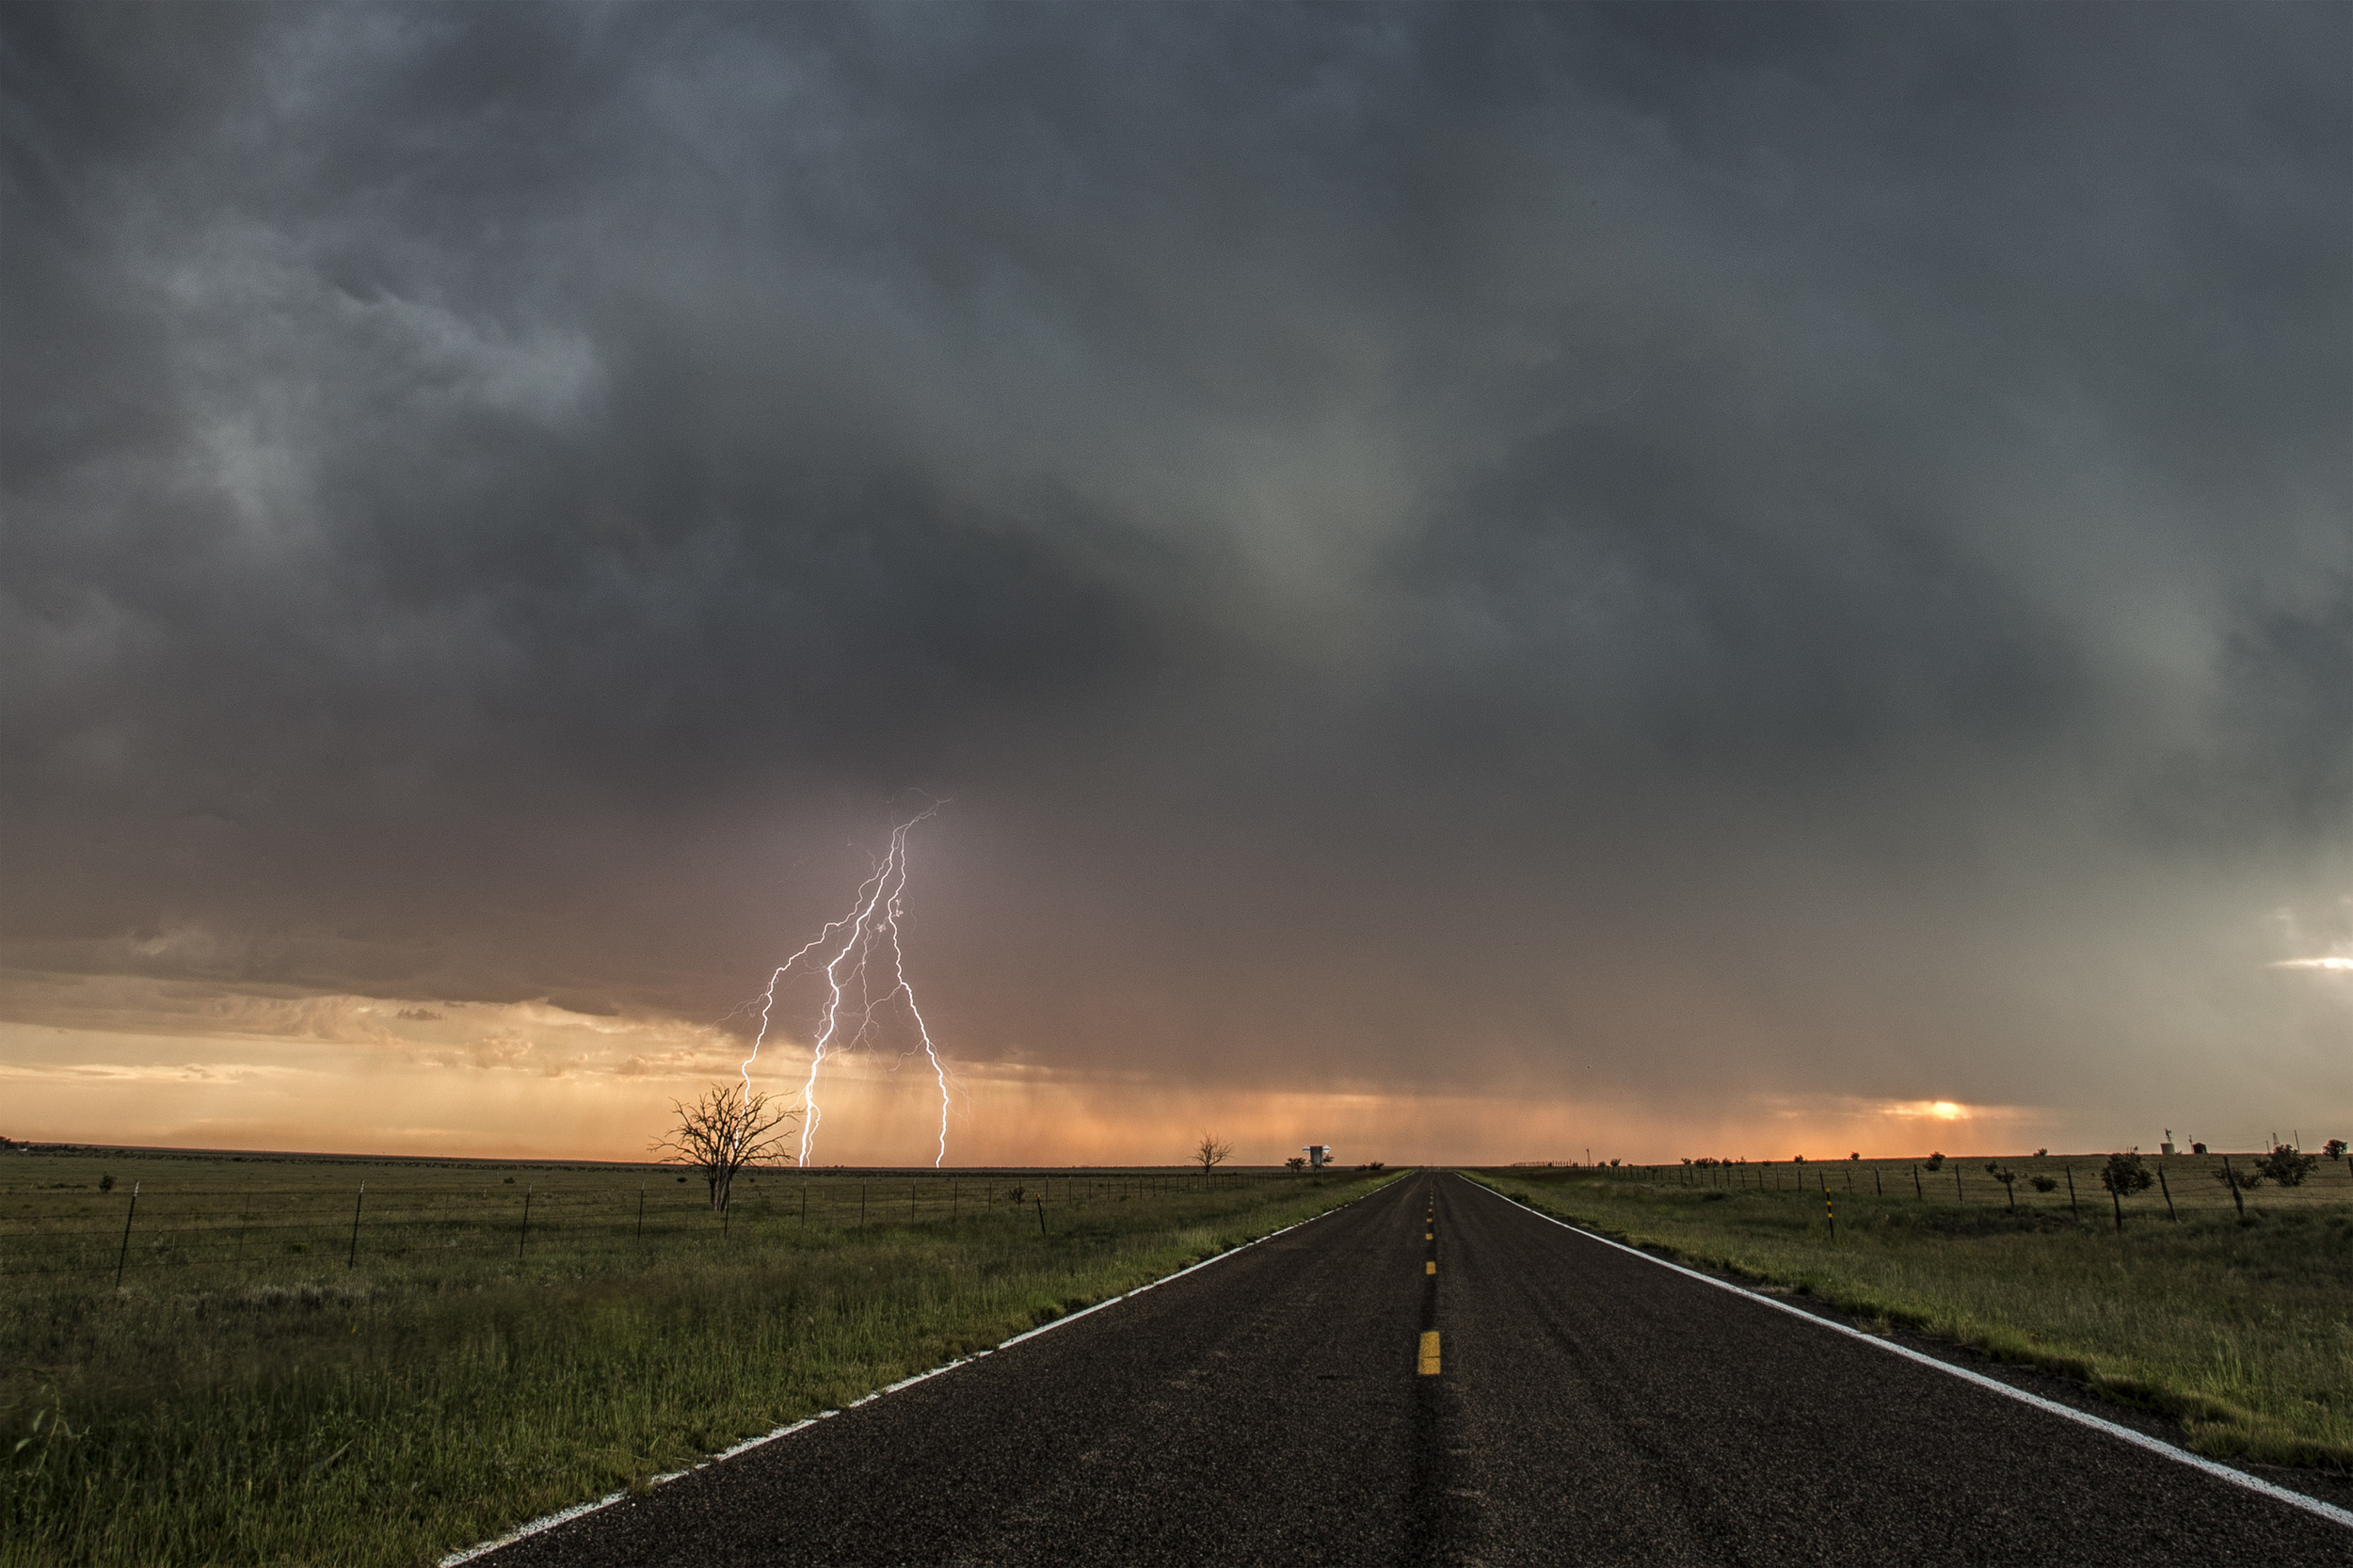 Lightning striking during a monsoon storm near Grady, New Mexico on August 17, 2013